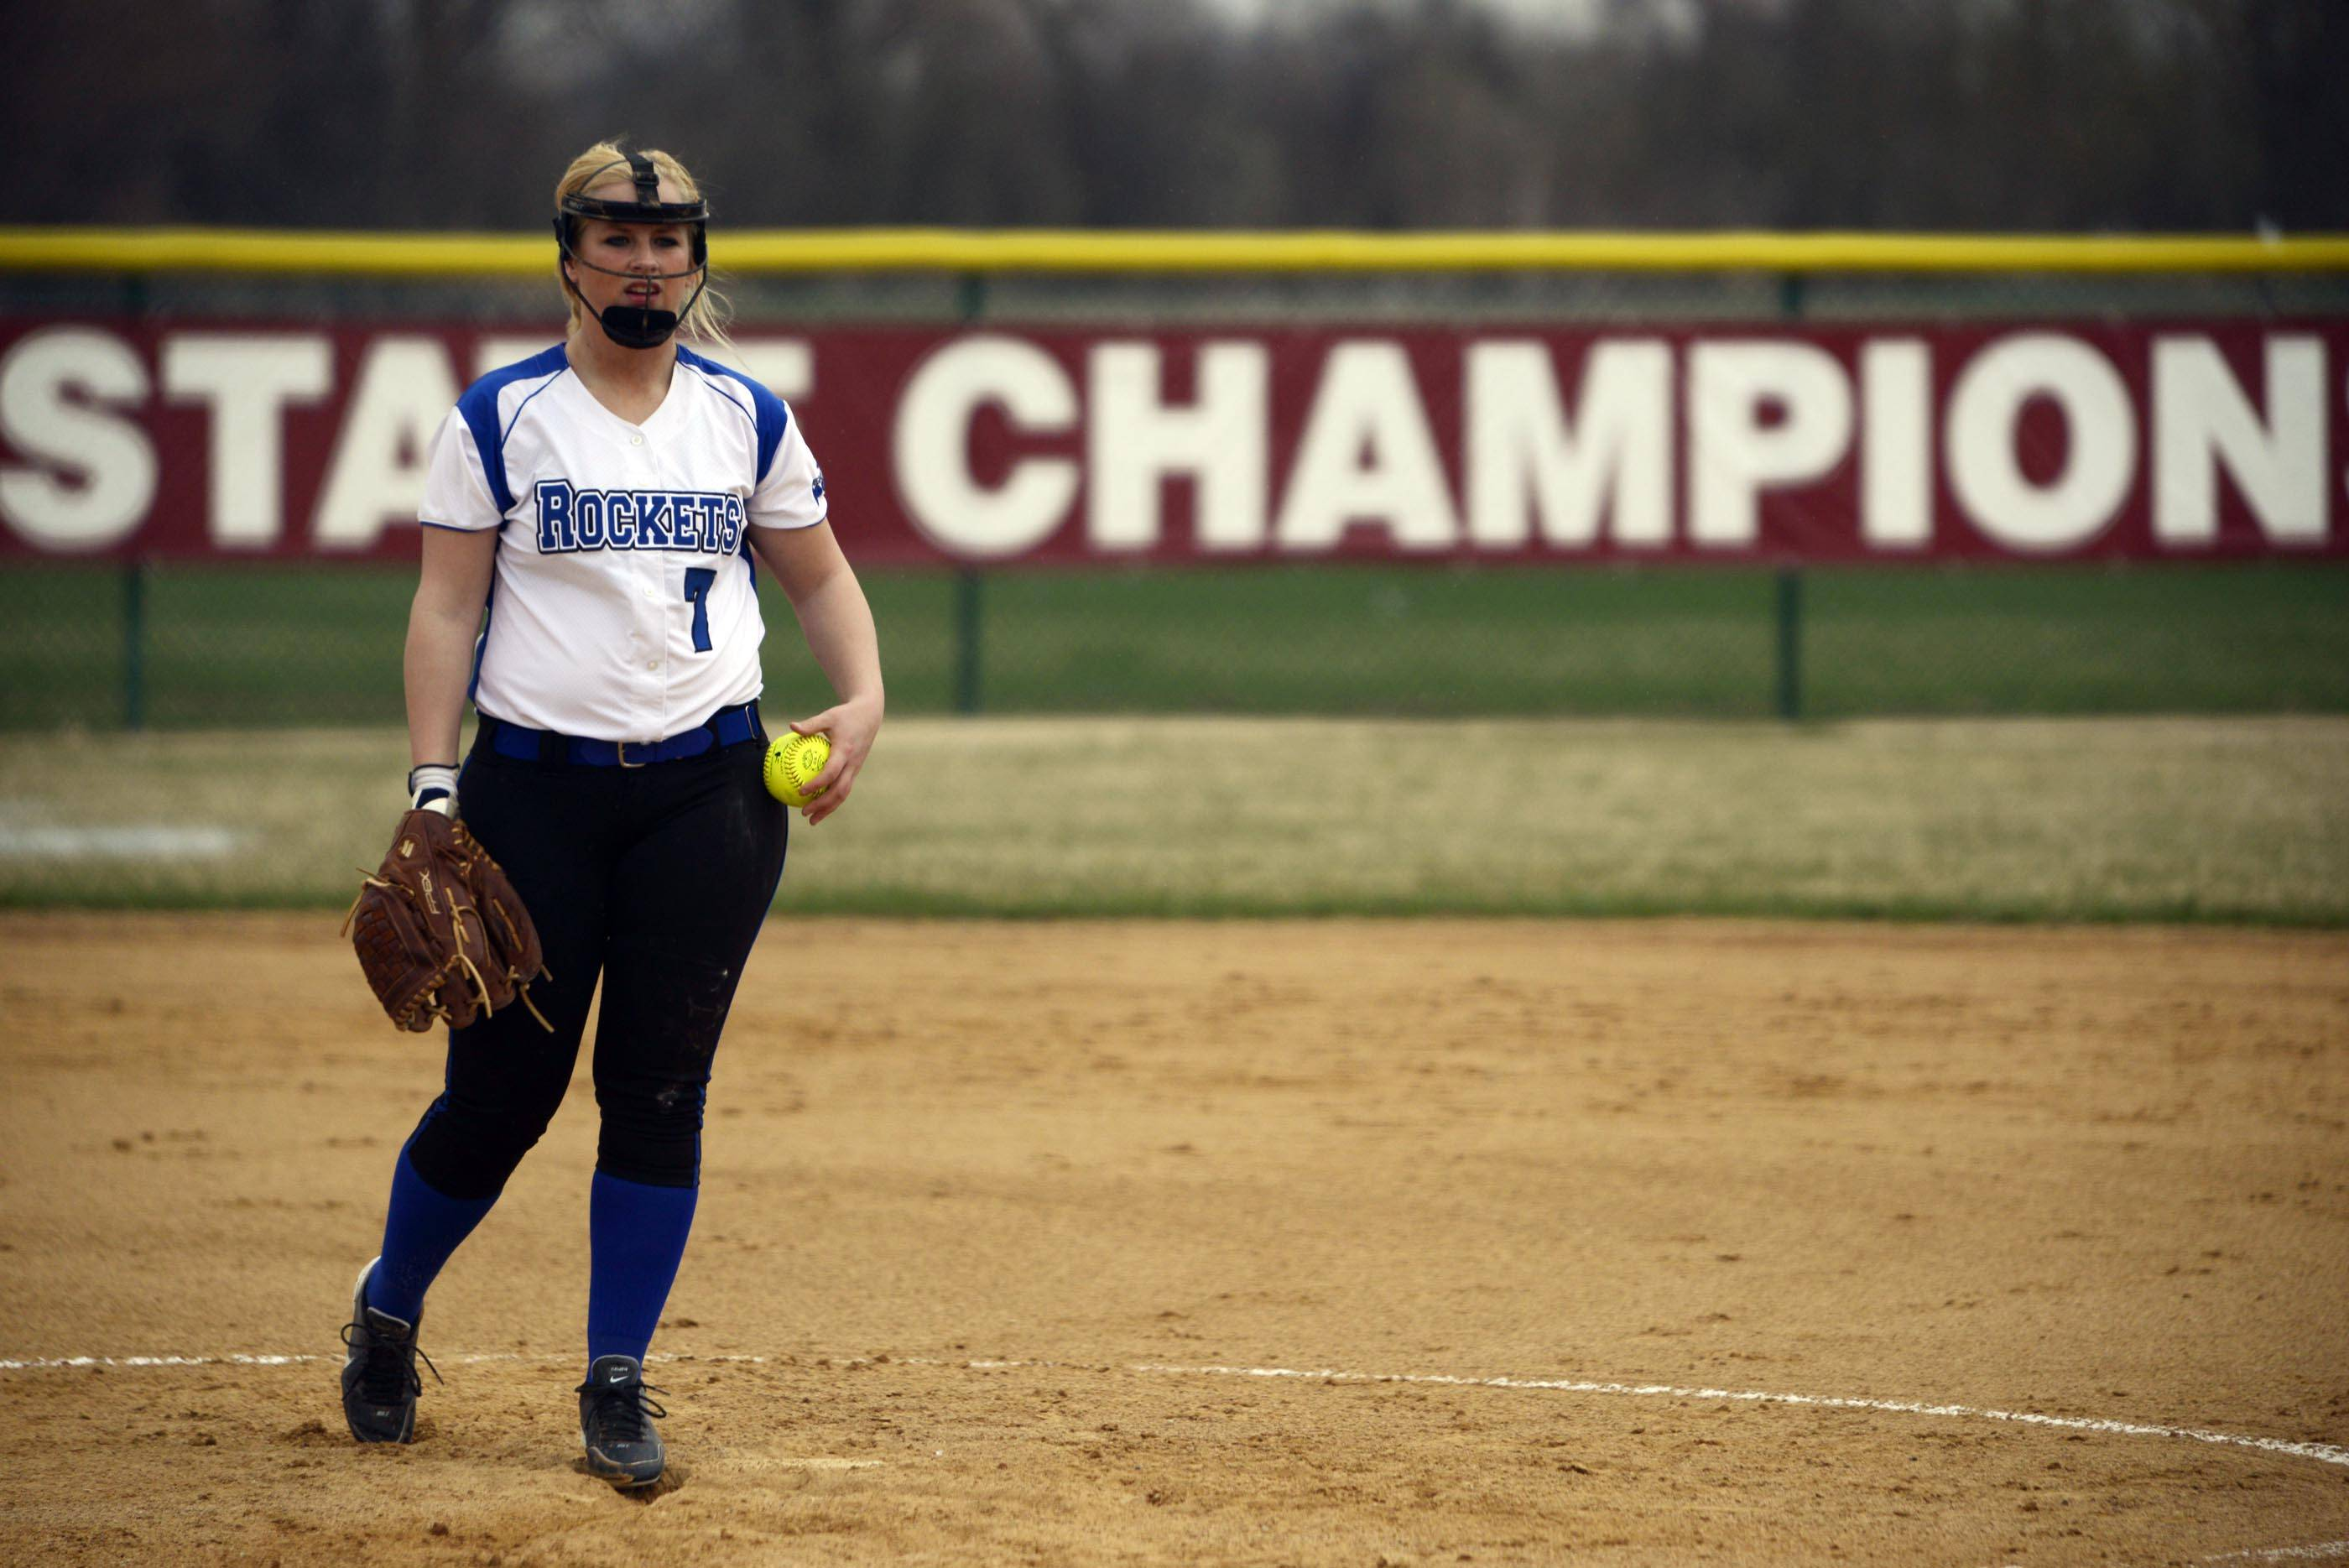 Burlington Central's Brooke Gaylord prepares to pitch against Marengo Monday in Marengo.